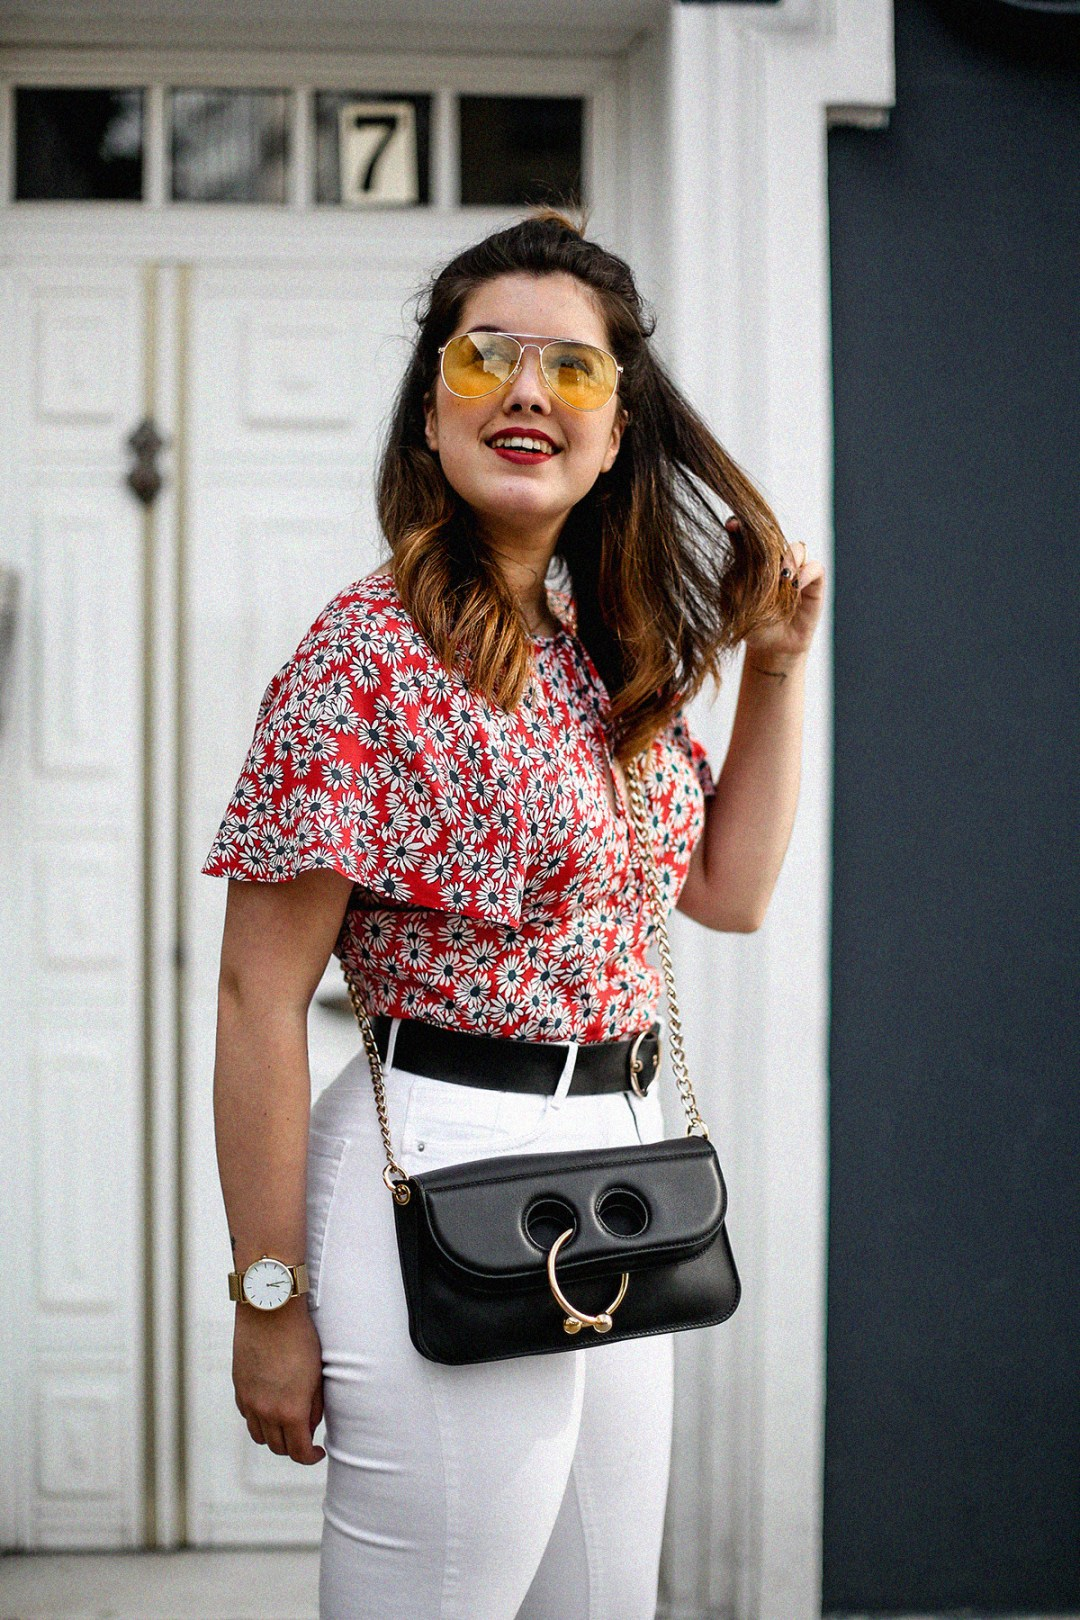 flower-top-zara-frayed-white-jeans-chanel-slingback-jw-anderson-bag-streetstyle4